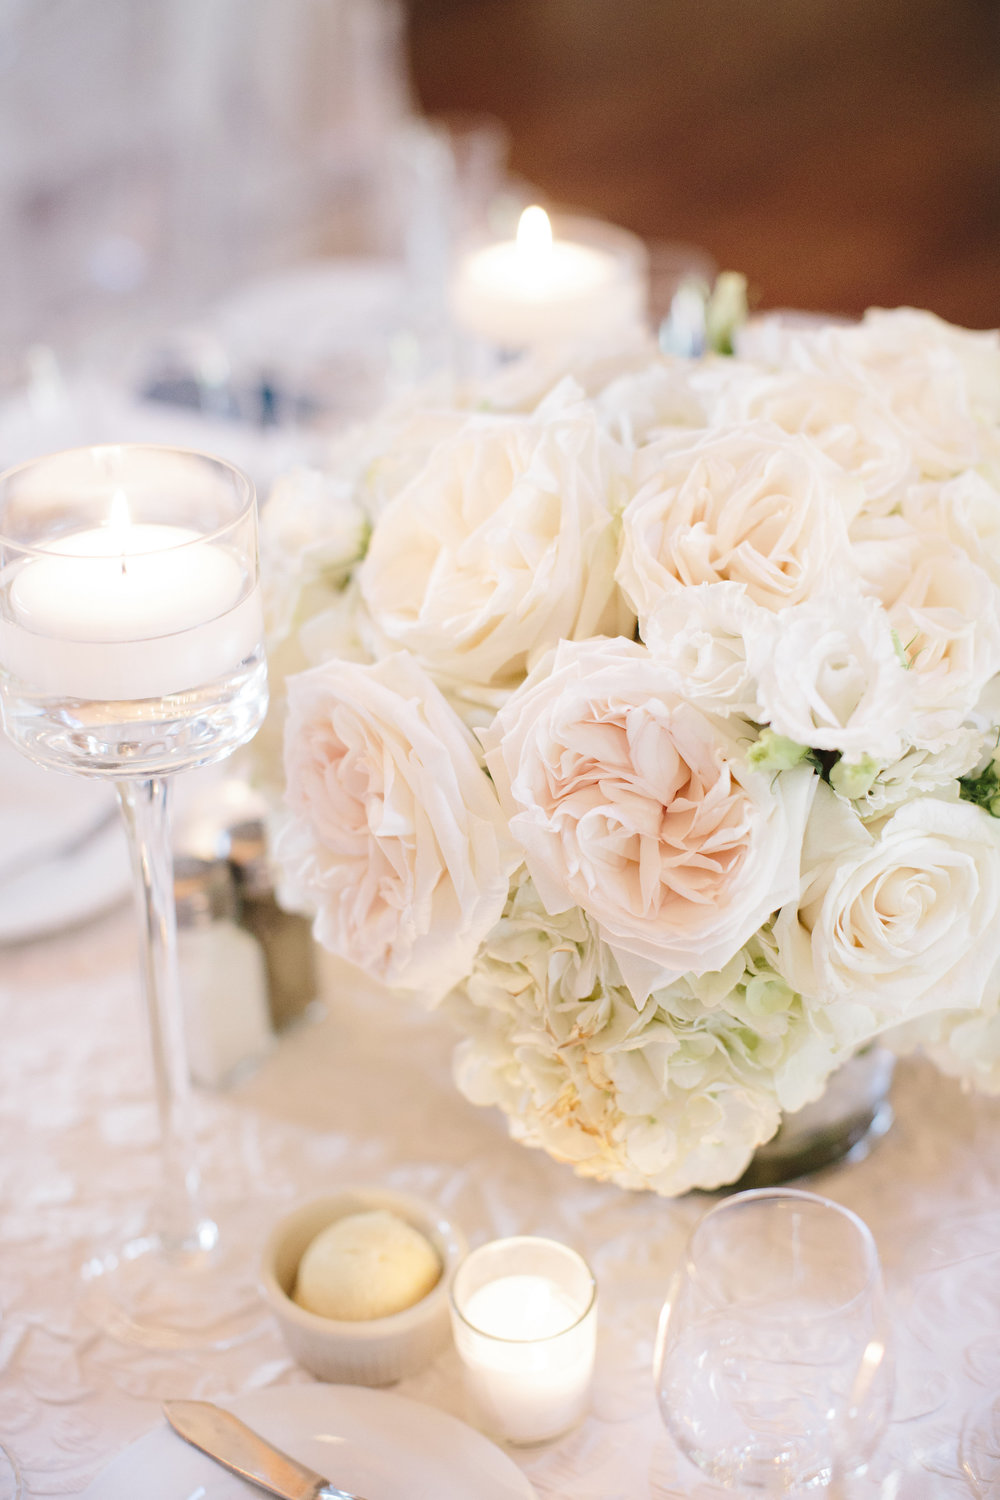 White wedding centerpieces by Lily Greenthumbs florist North Carolina